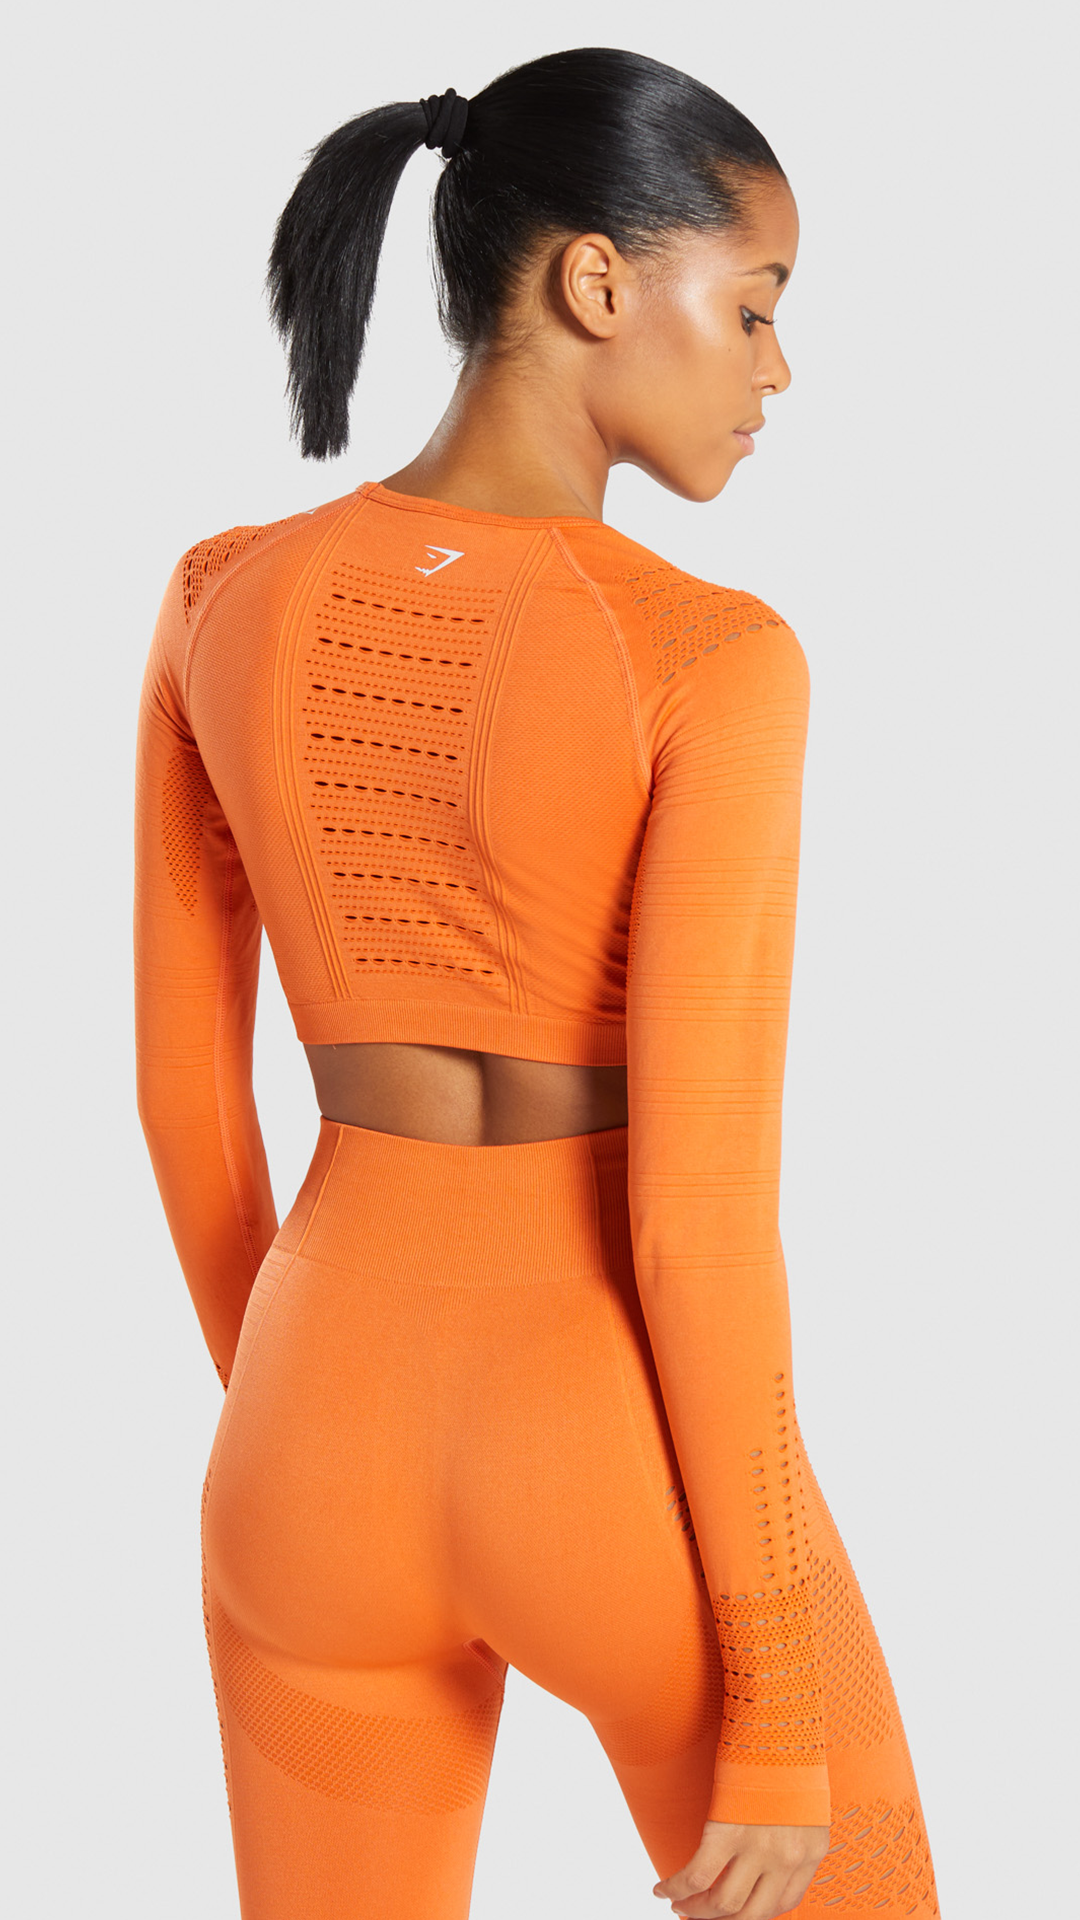 cebfbd3743a78 The Flawless Knit Long Sleeve Crop Top